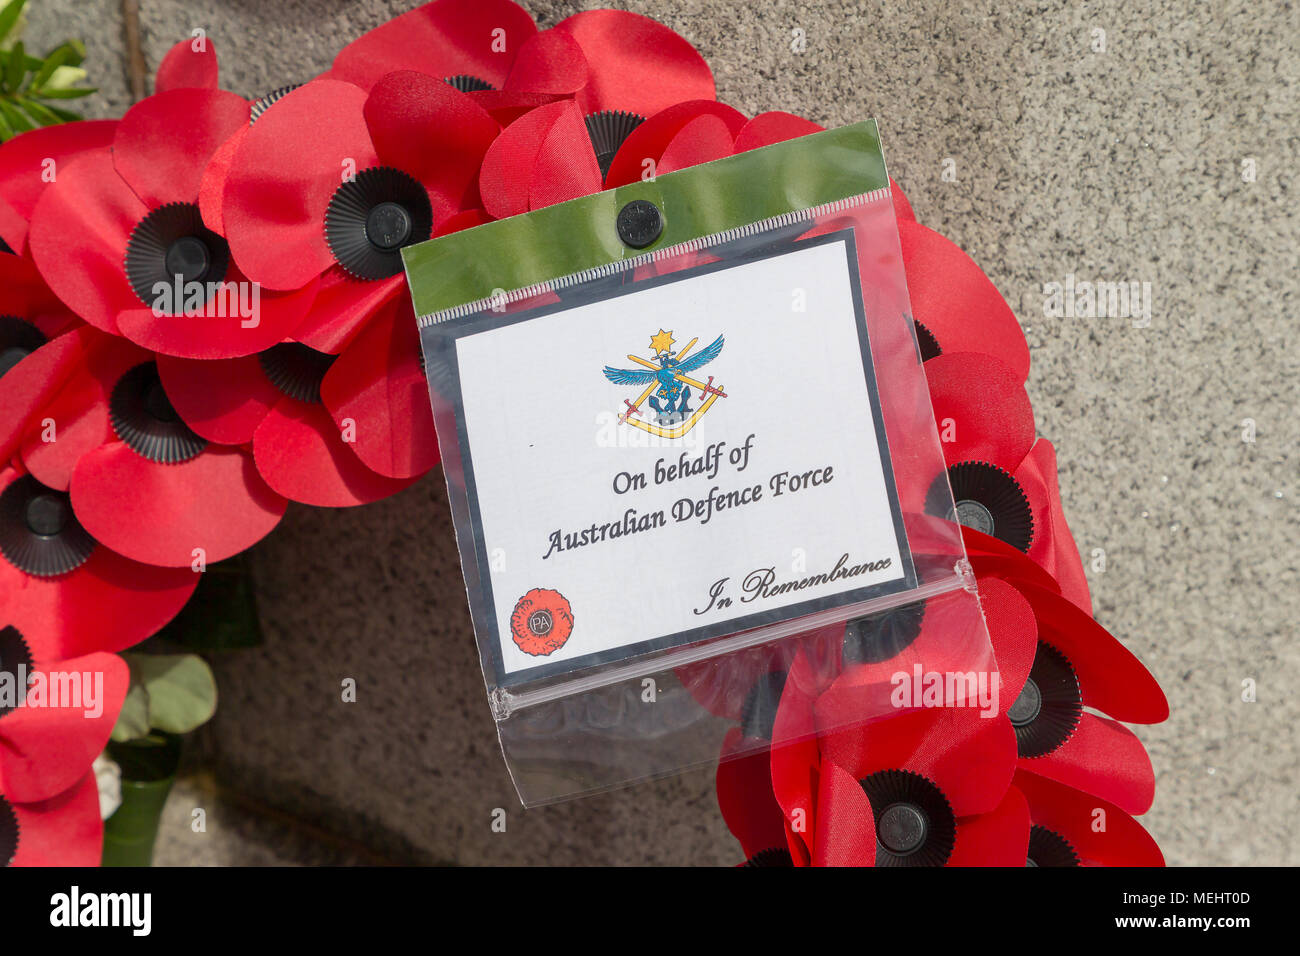 Wreaths that have been laid in Soldier's Corner to commemorate the anniversary of ANZAC day - Warrington, UK, 22 April 2018. The Anniversary of ANZAC Day has been commemorated on Sunday 22 April 2018 within Soldiers' Corner of Warrington Cemetery when the Deputy Mayor, Cllr Karen Mundry, Cadets from the Queen's Lancashire Regiment, Warrington Sea Cadets and many veterans were in attendance Credit: John Hopkins/Alamy Live News Stock Photo